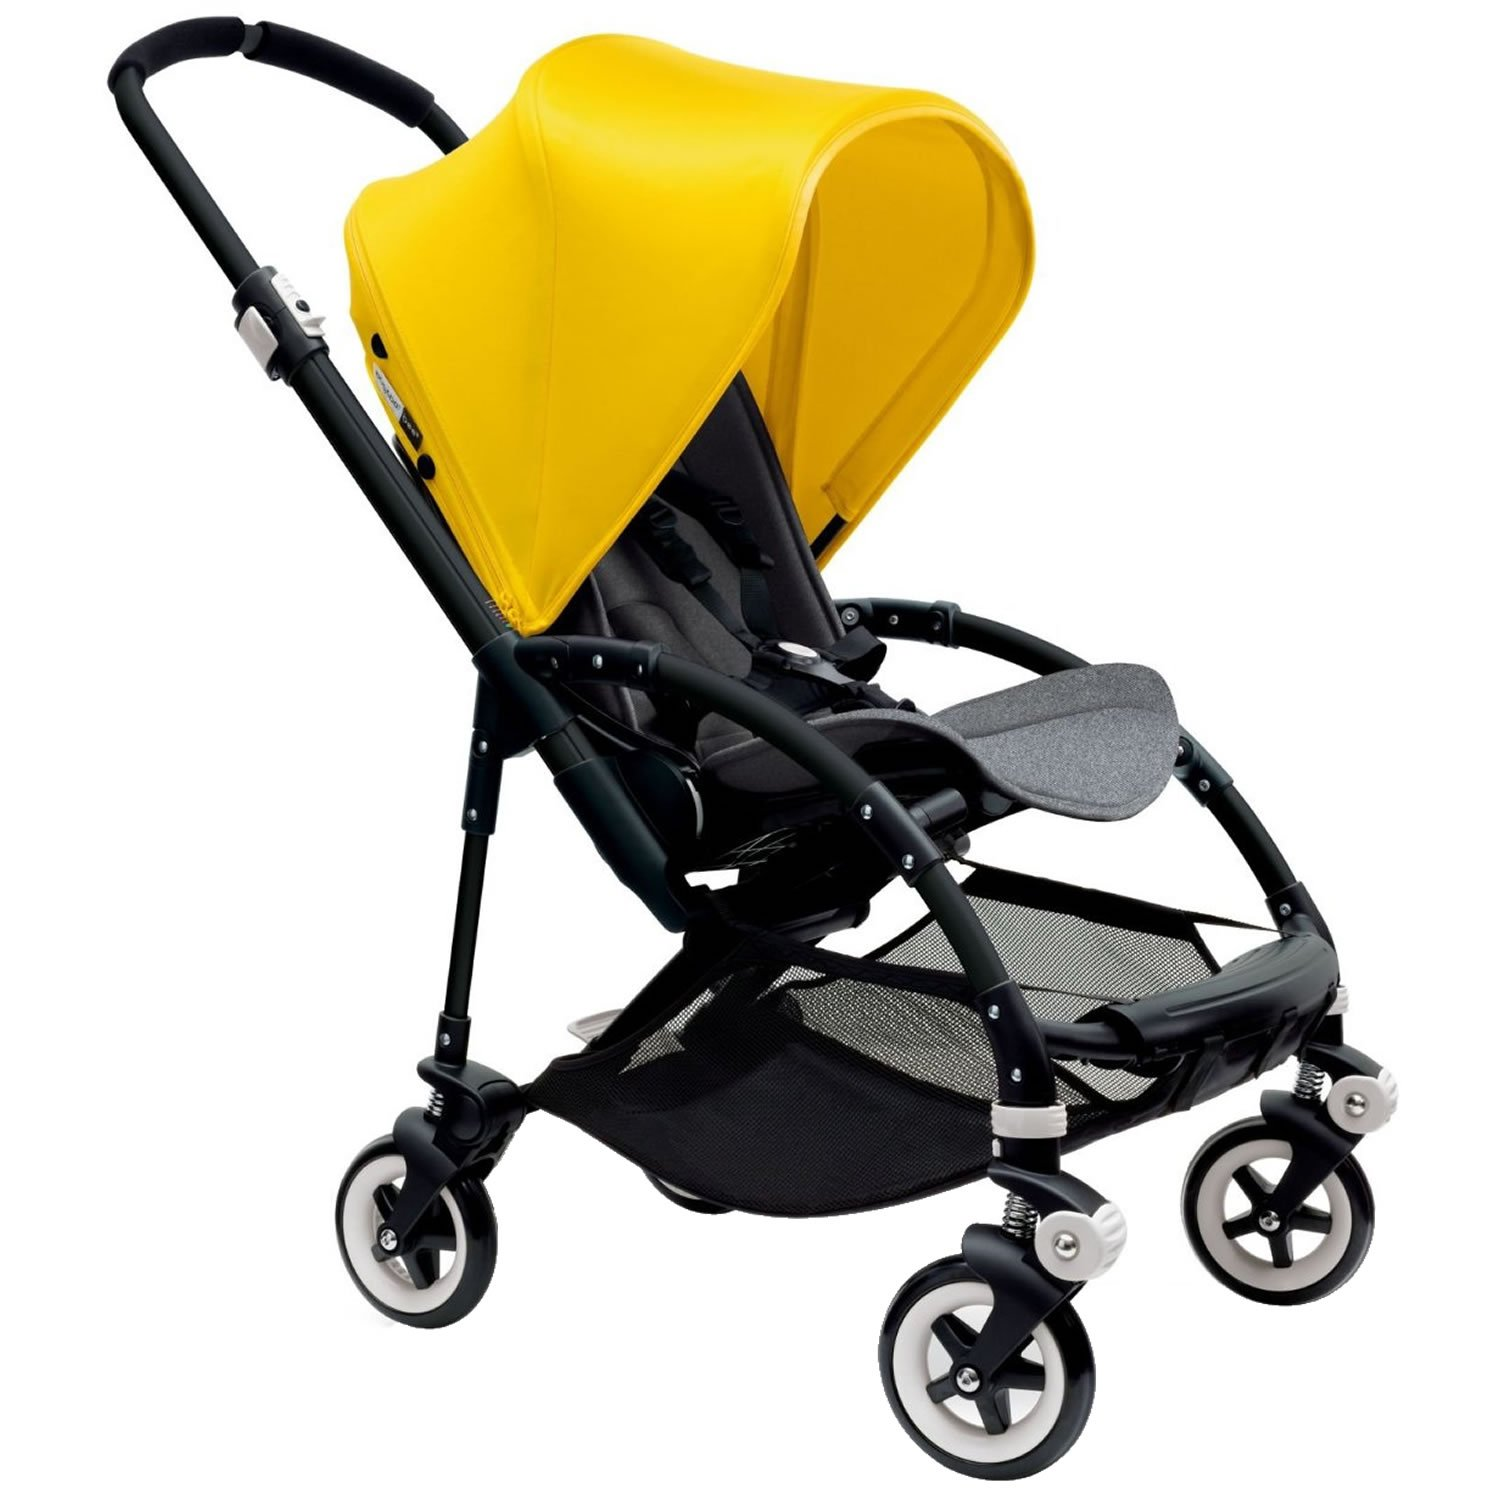 Amazon.com: carriola para Bugaboo Bee 3 Marco Negro Con ...